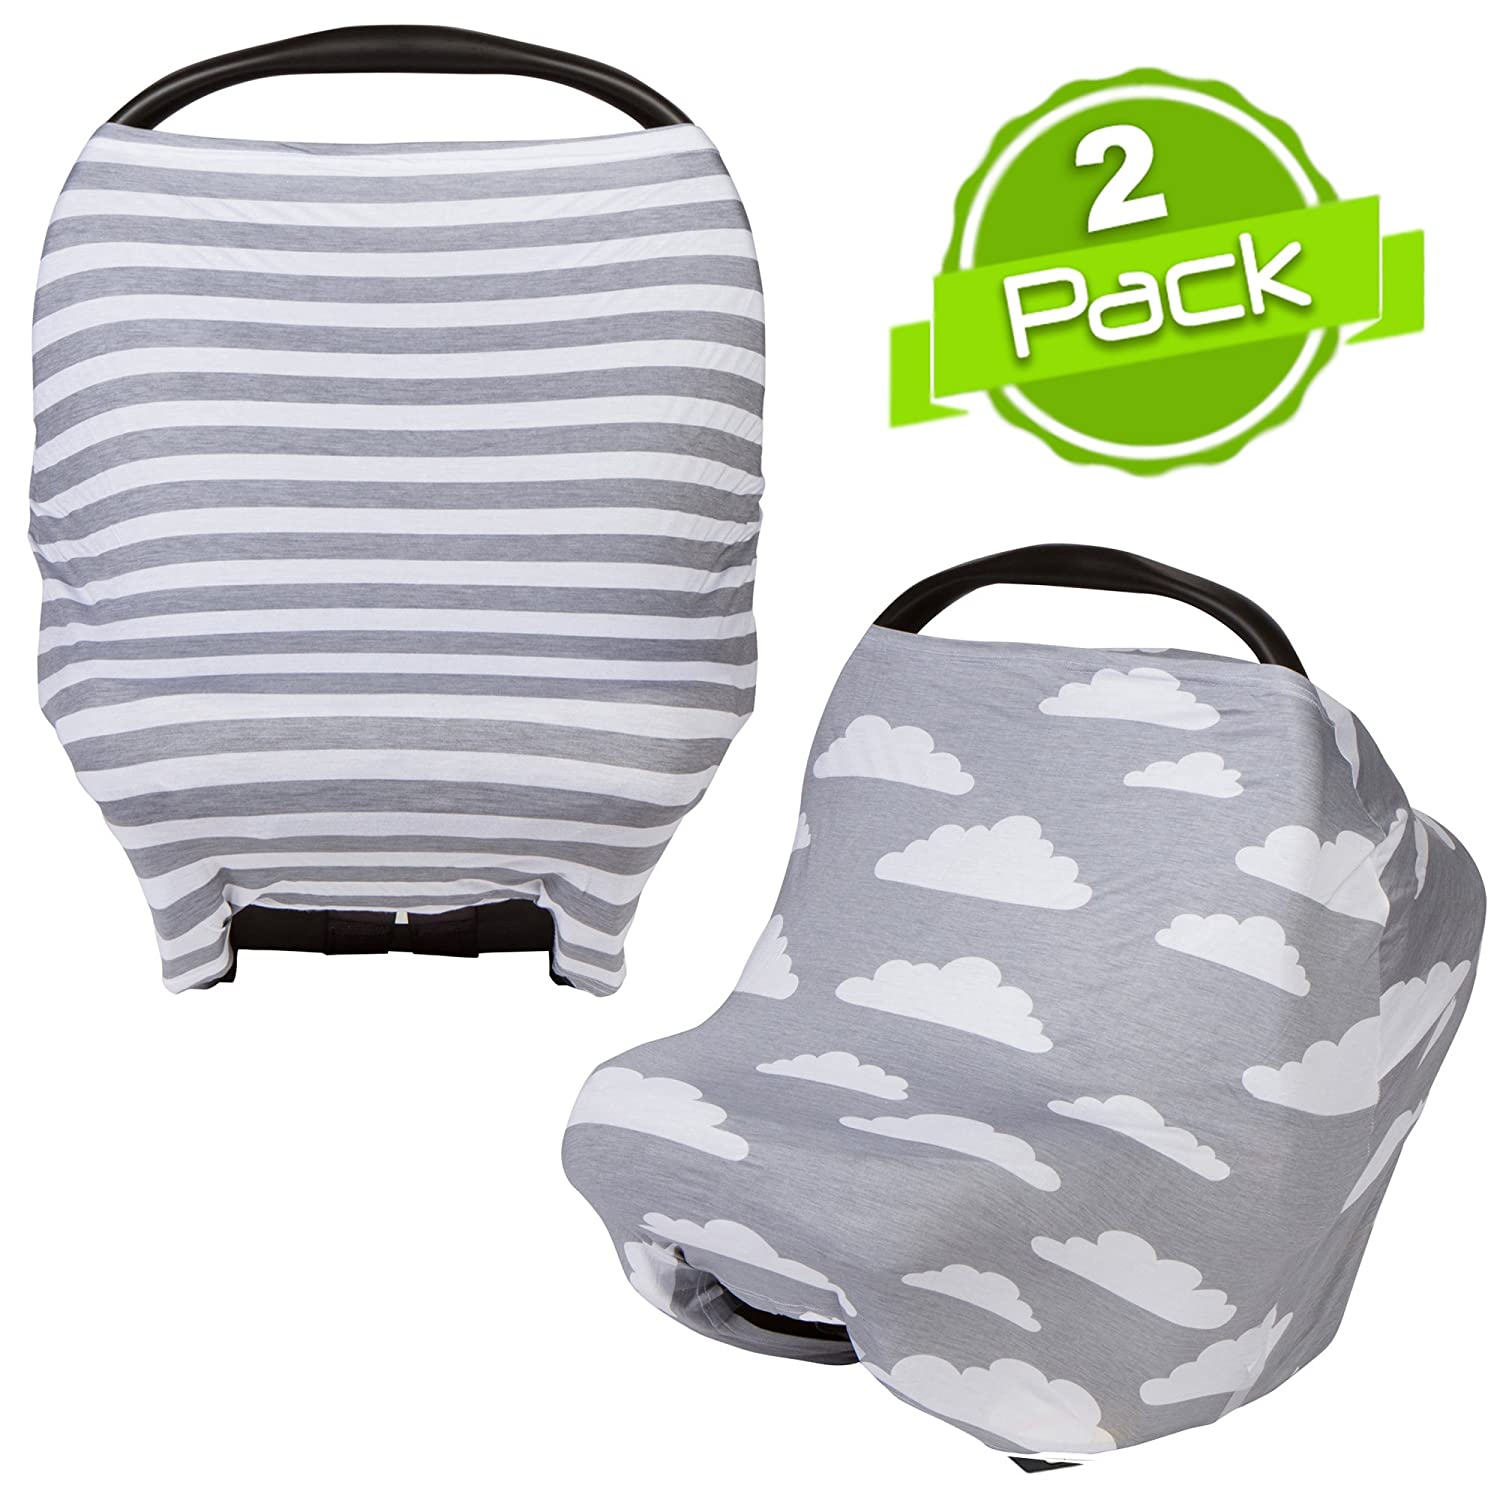 Baby Car Seat Cover Canopy and Nursing Cover Multi-Use Stretchy 5 in 1 Gift (2 Pack) by BaeBae Goods BaeBae & Company